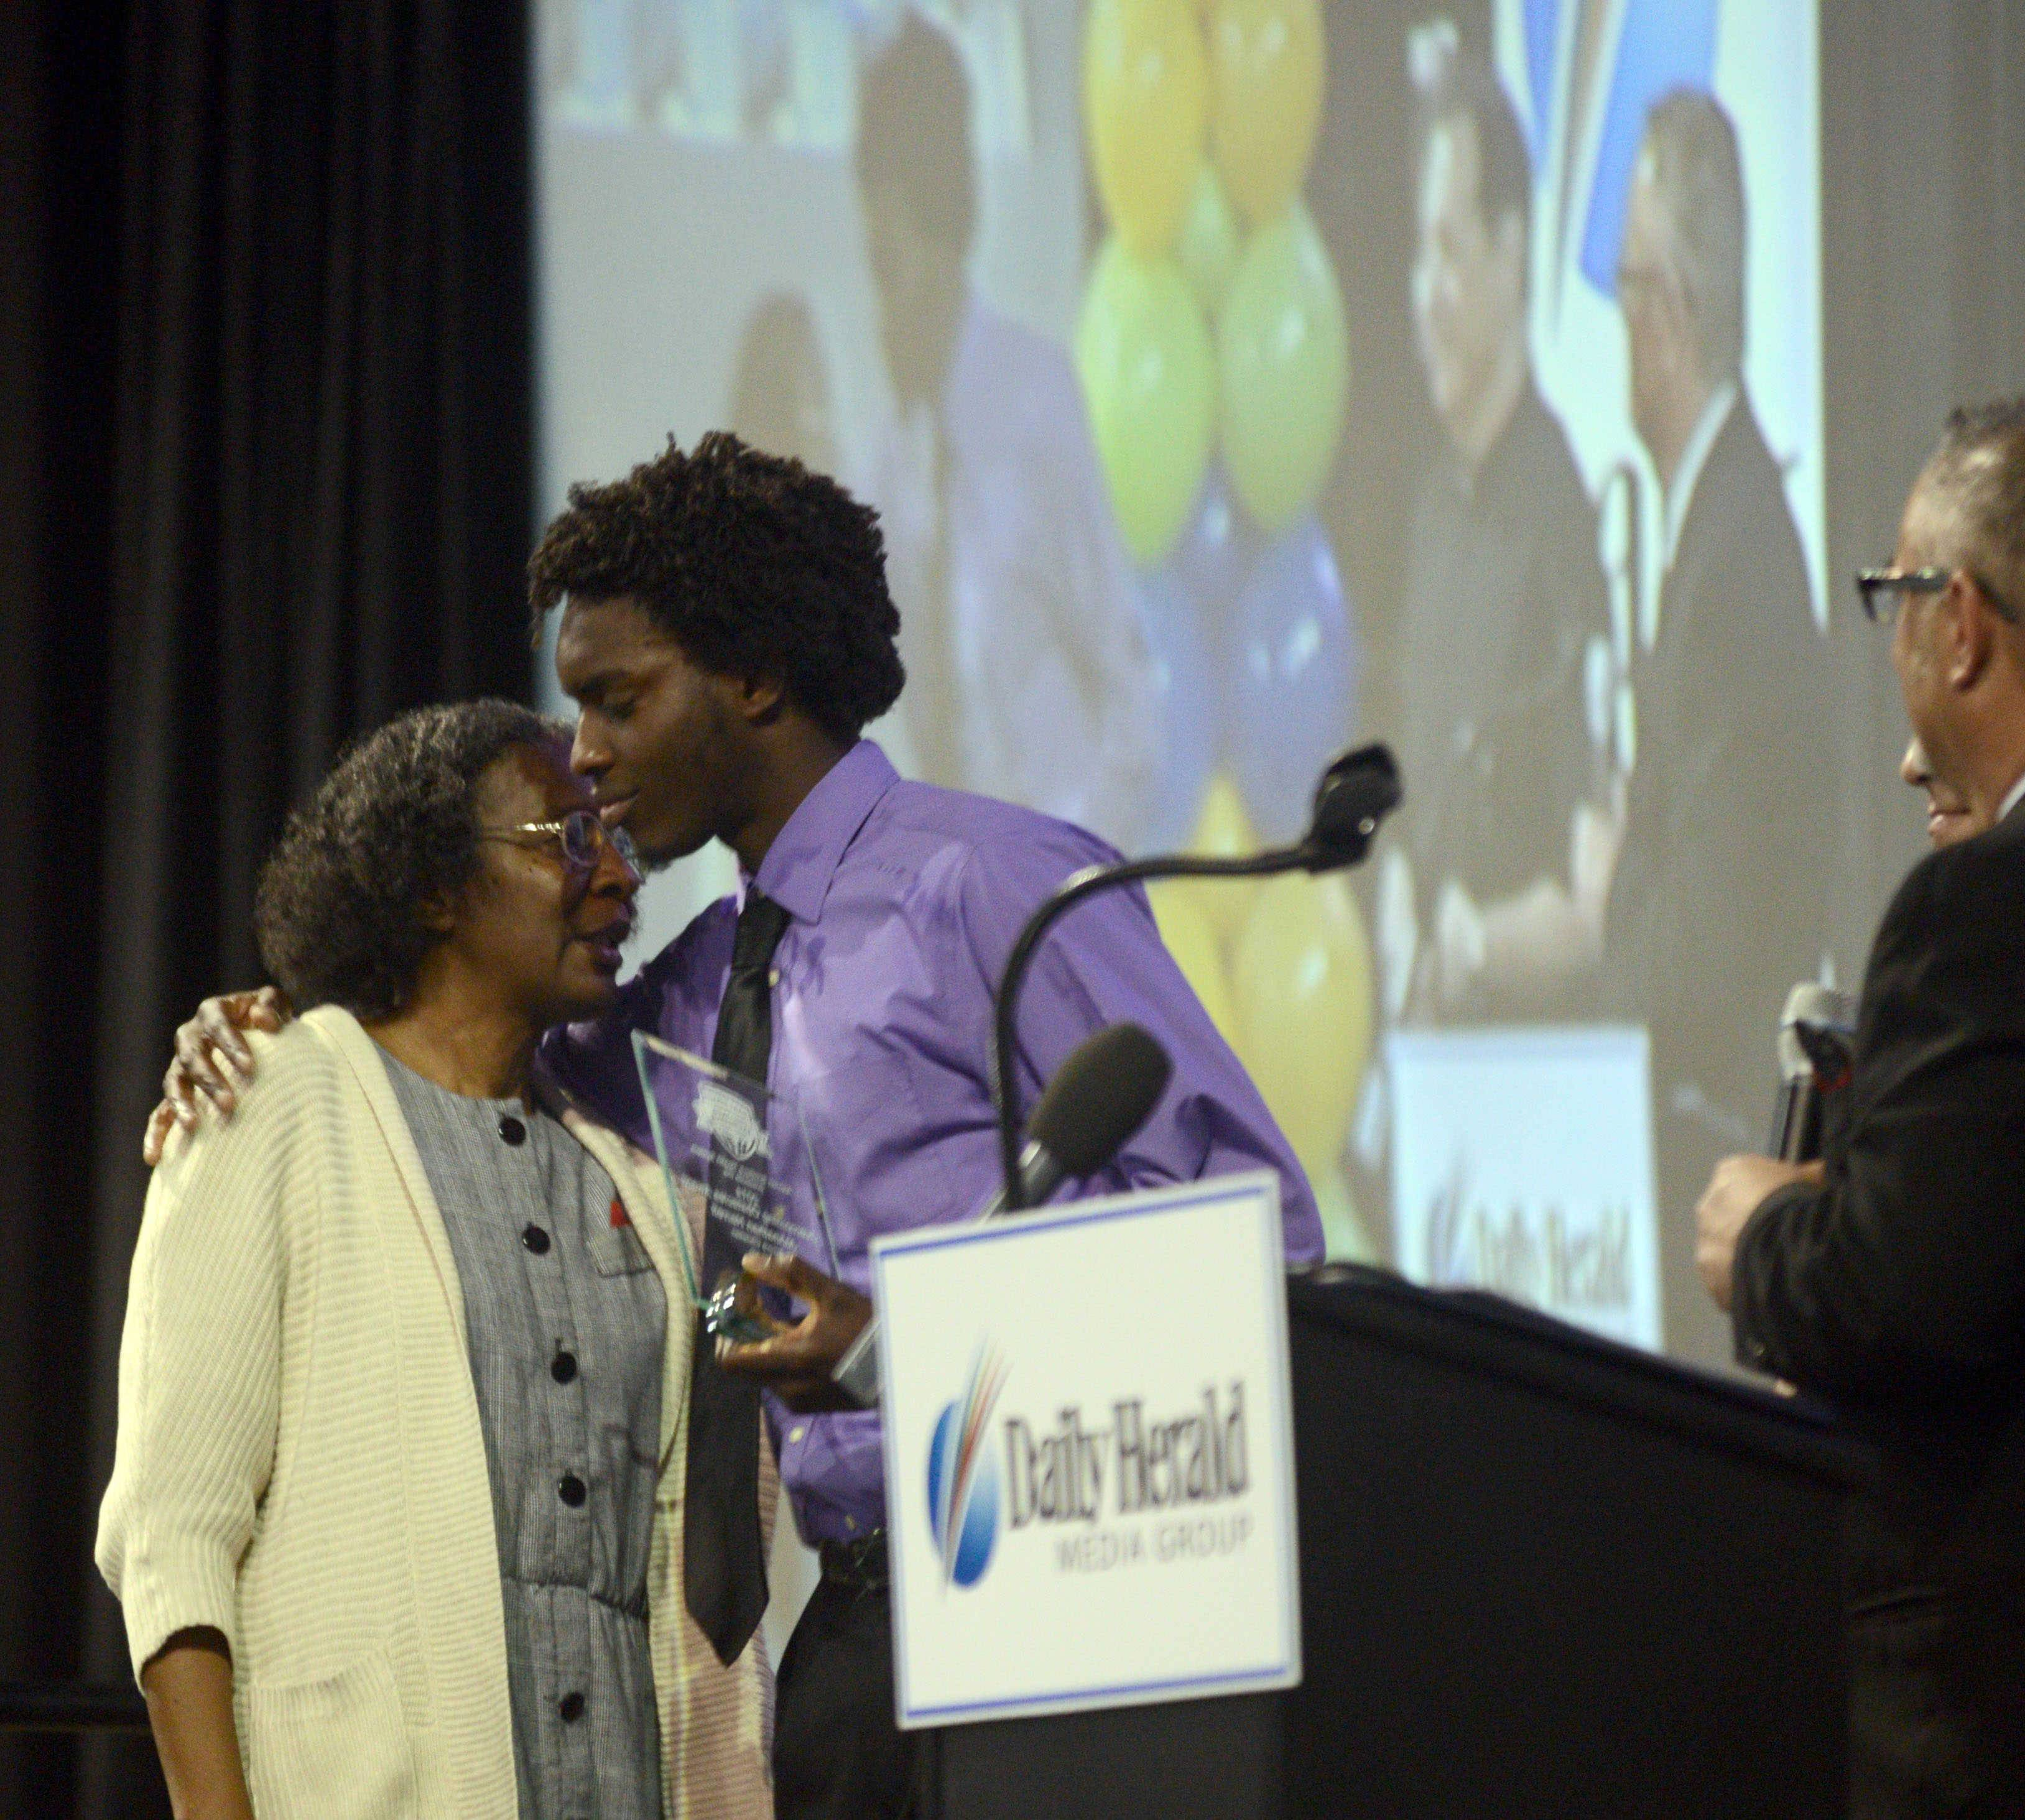 Aurora Christian High School basketball player Johnathan Harrell hugs his mother Sunday after receiving an Overcoming Obstacle Award during the Daily Herald Prep Sports Excellence banquet at the Sears Centre Arena in Hoffman Estates. Johnathan's mother encouraged him to play in a game last winter just a day after his brother was killed in a car accident.